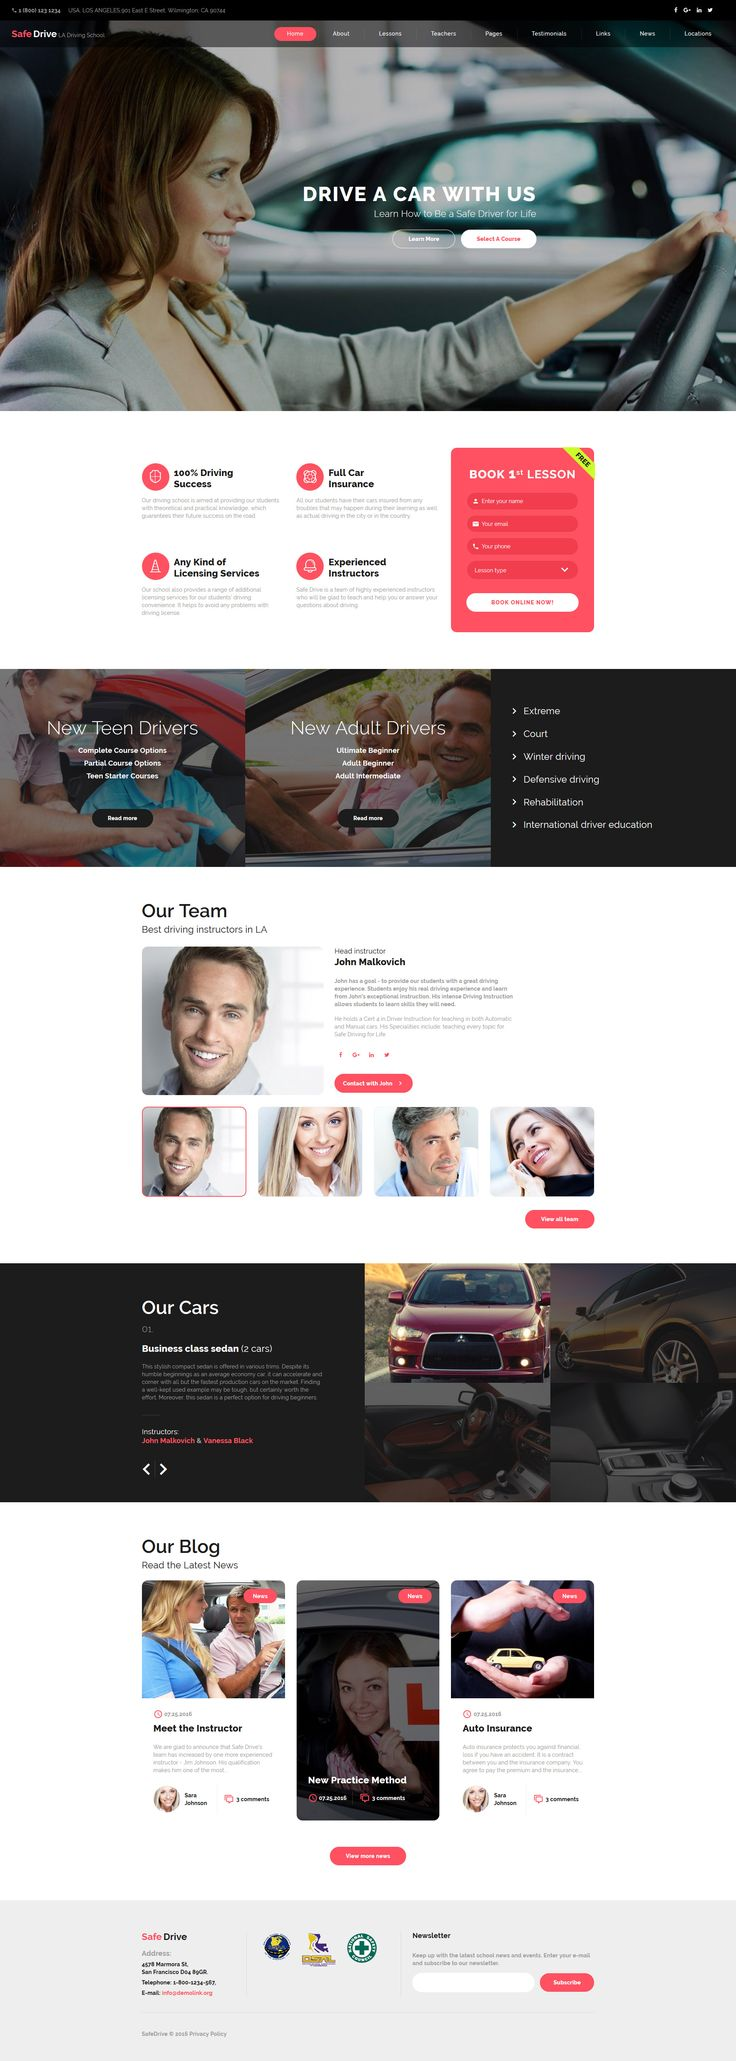 Best 25 website template ideas on pinterest business website safe drive traffic school driving lessons website template pronofoot35fo Choice Image